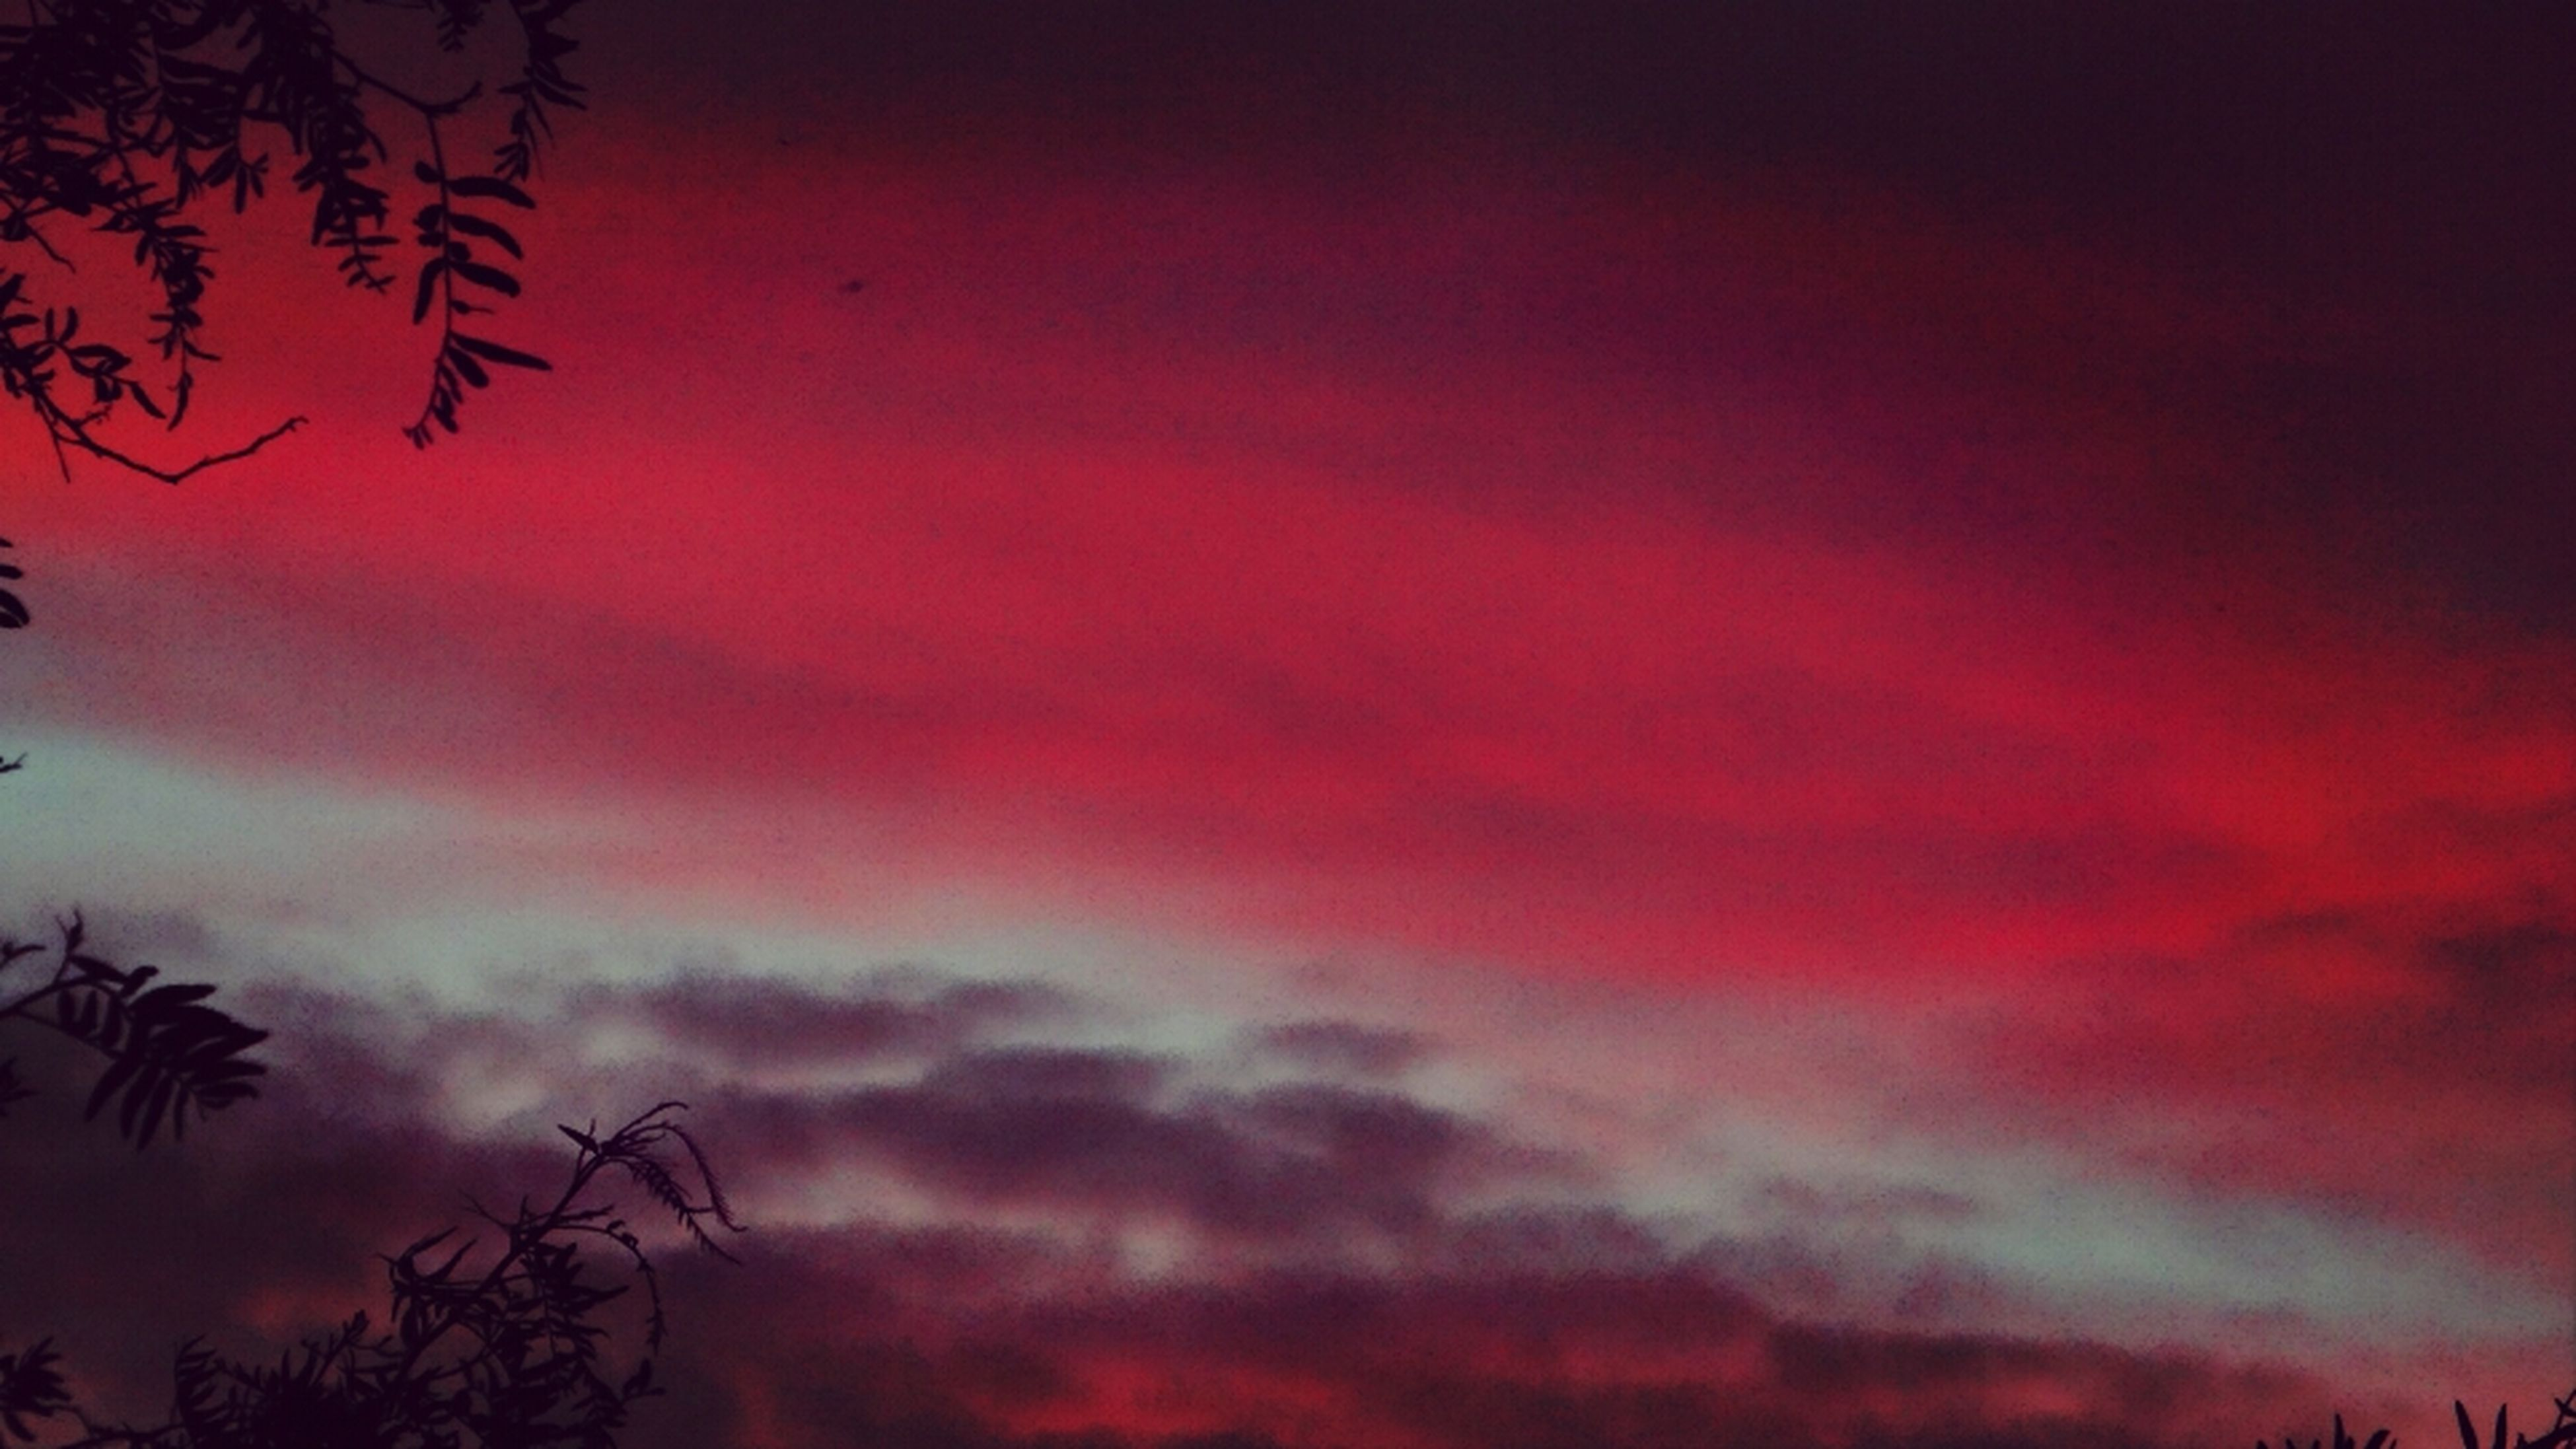 sky, sunset, low angle view, beauty in nature, tranquility, tree, silhouette, cloud - sky, scenics, nature, tranquil scene, orange color, red, cloudy, idyllic, dusk, dramatic sky, growth, overcast, cloud